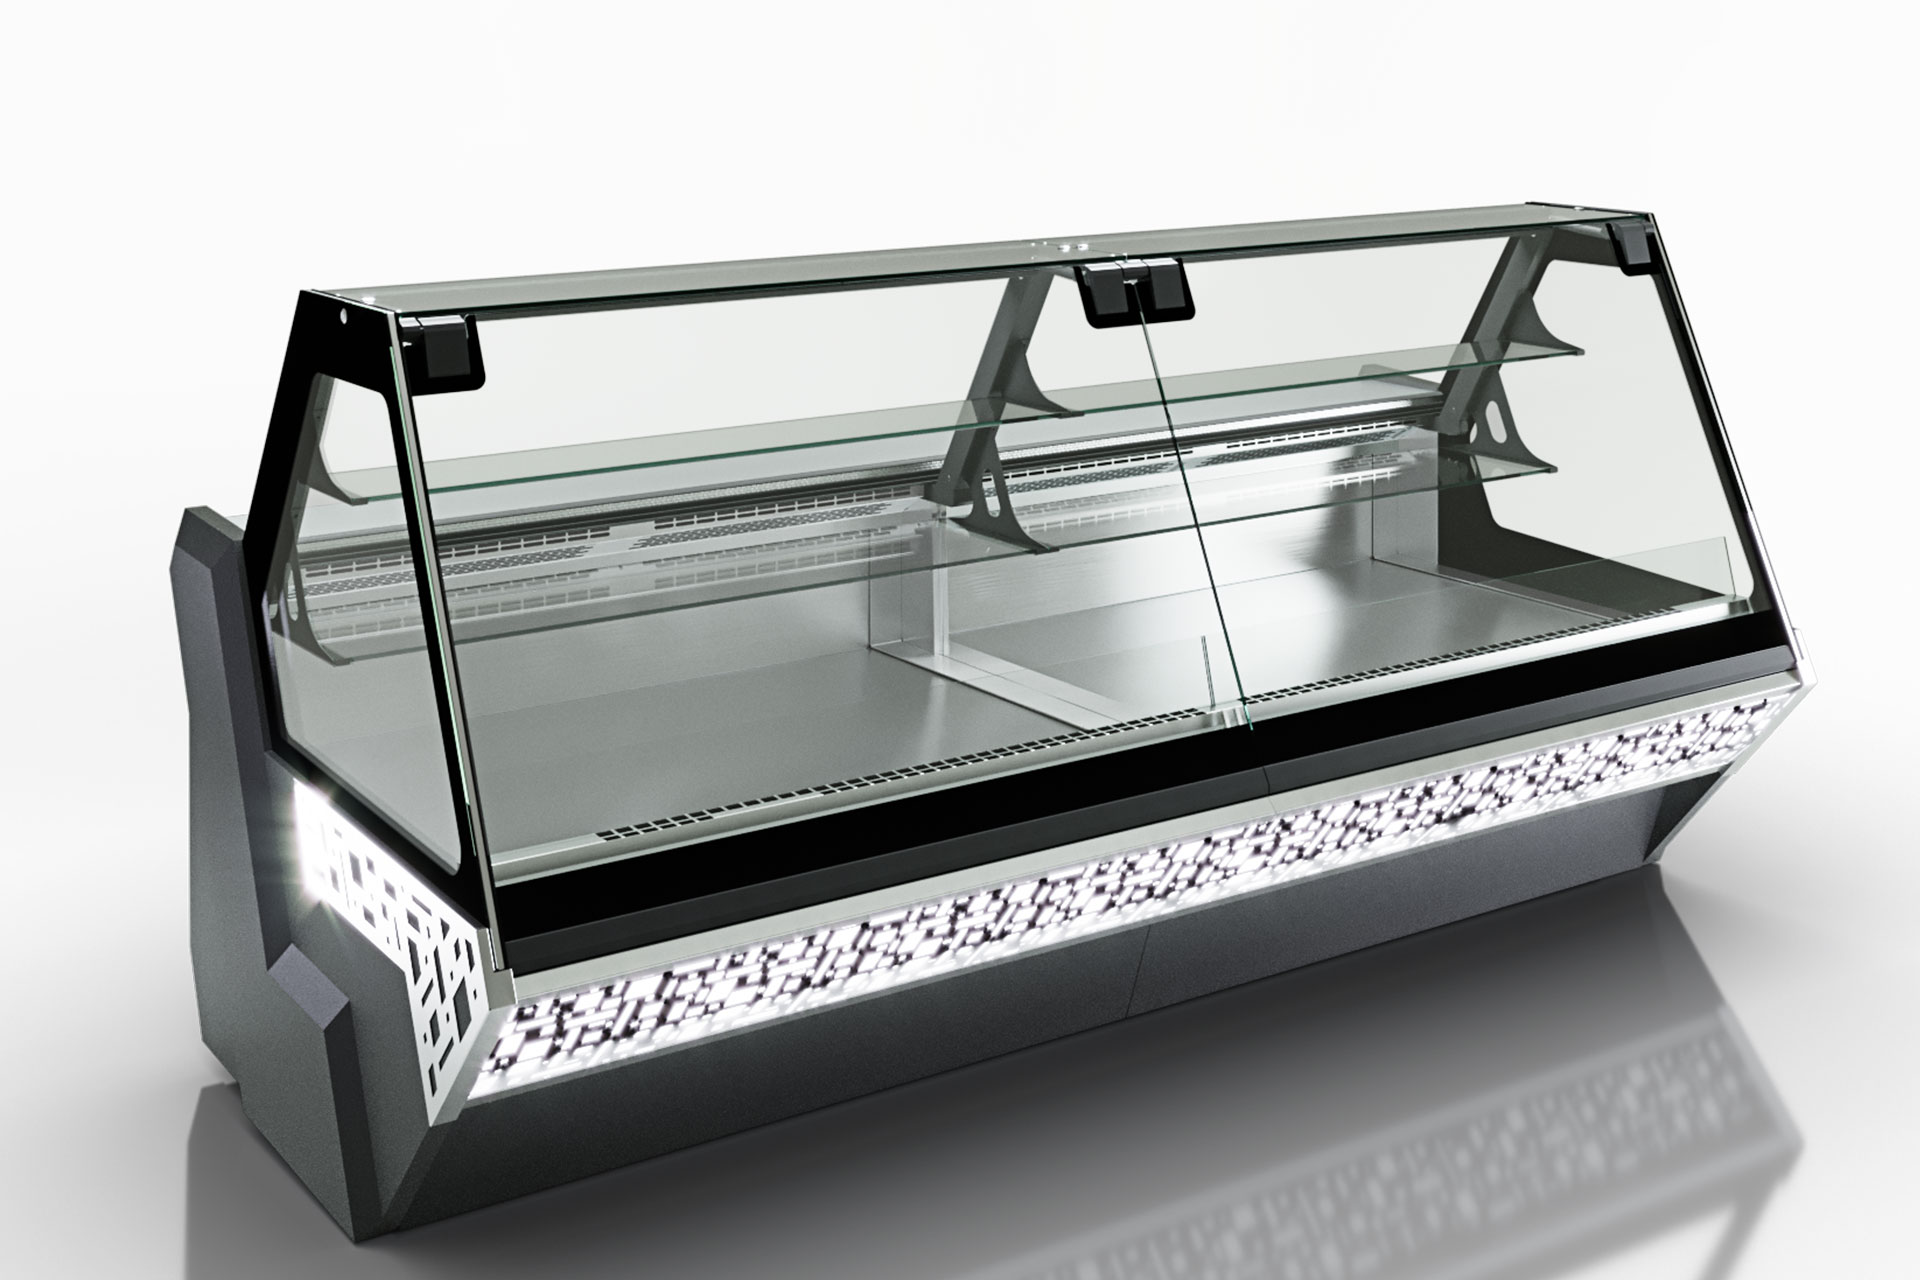 Confectionery counter Missouri sapphire MK 115 patisserie PS 125-DLM